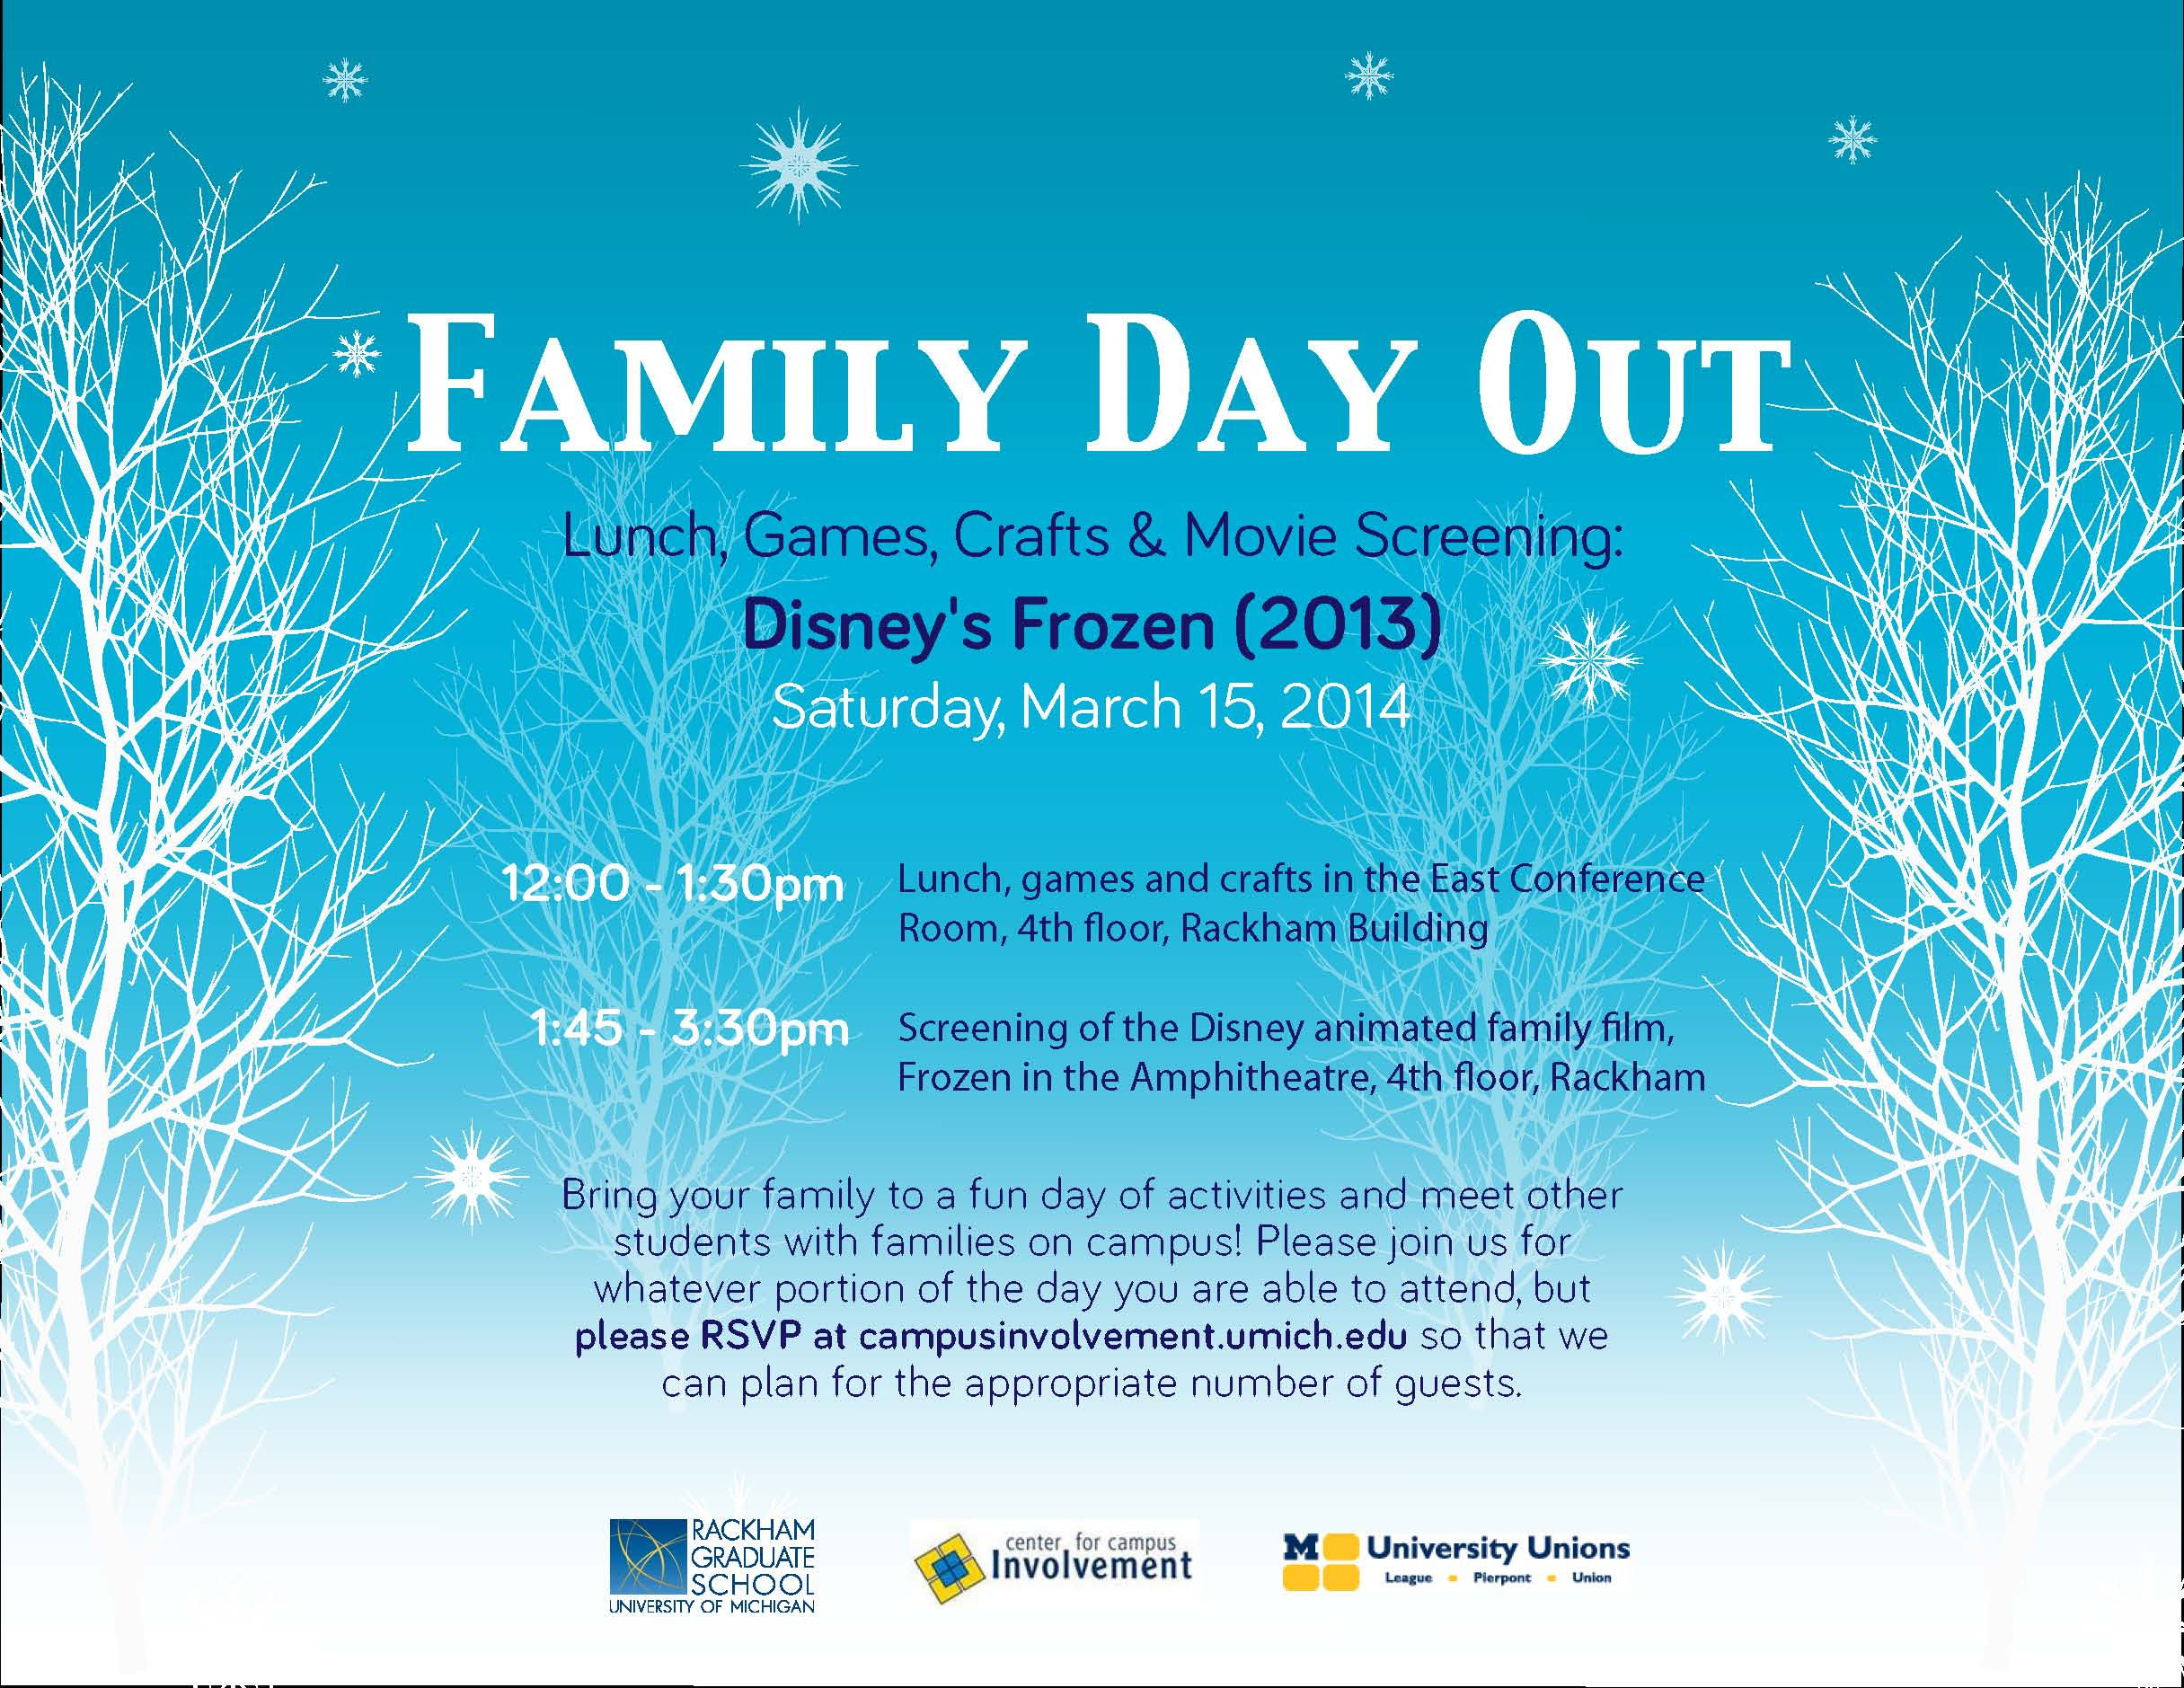 Family Day Out. March 15. Lunch, crafts, games and screening of Disney